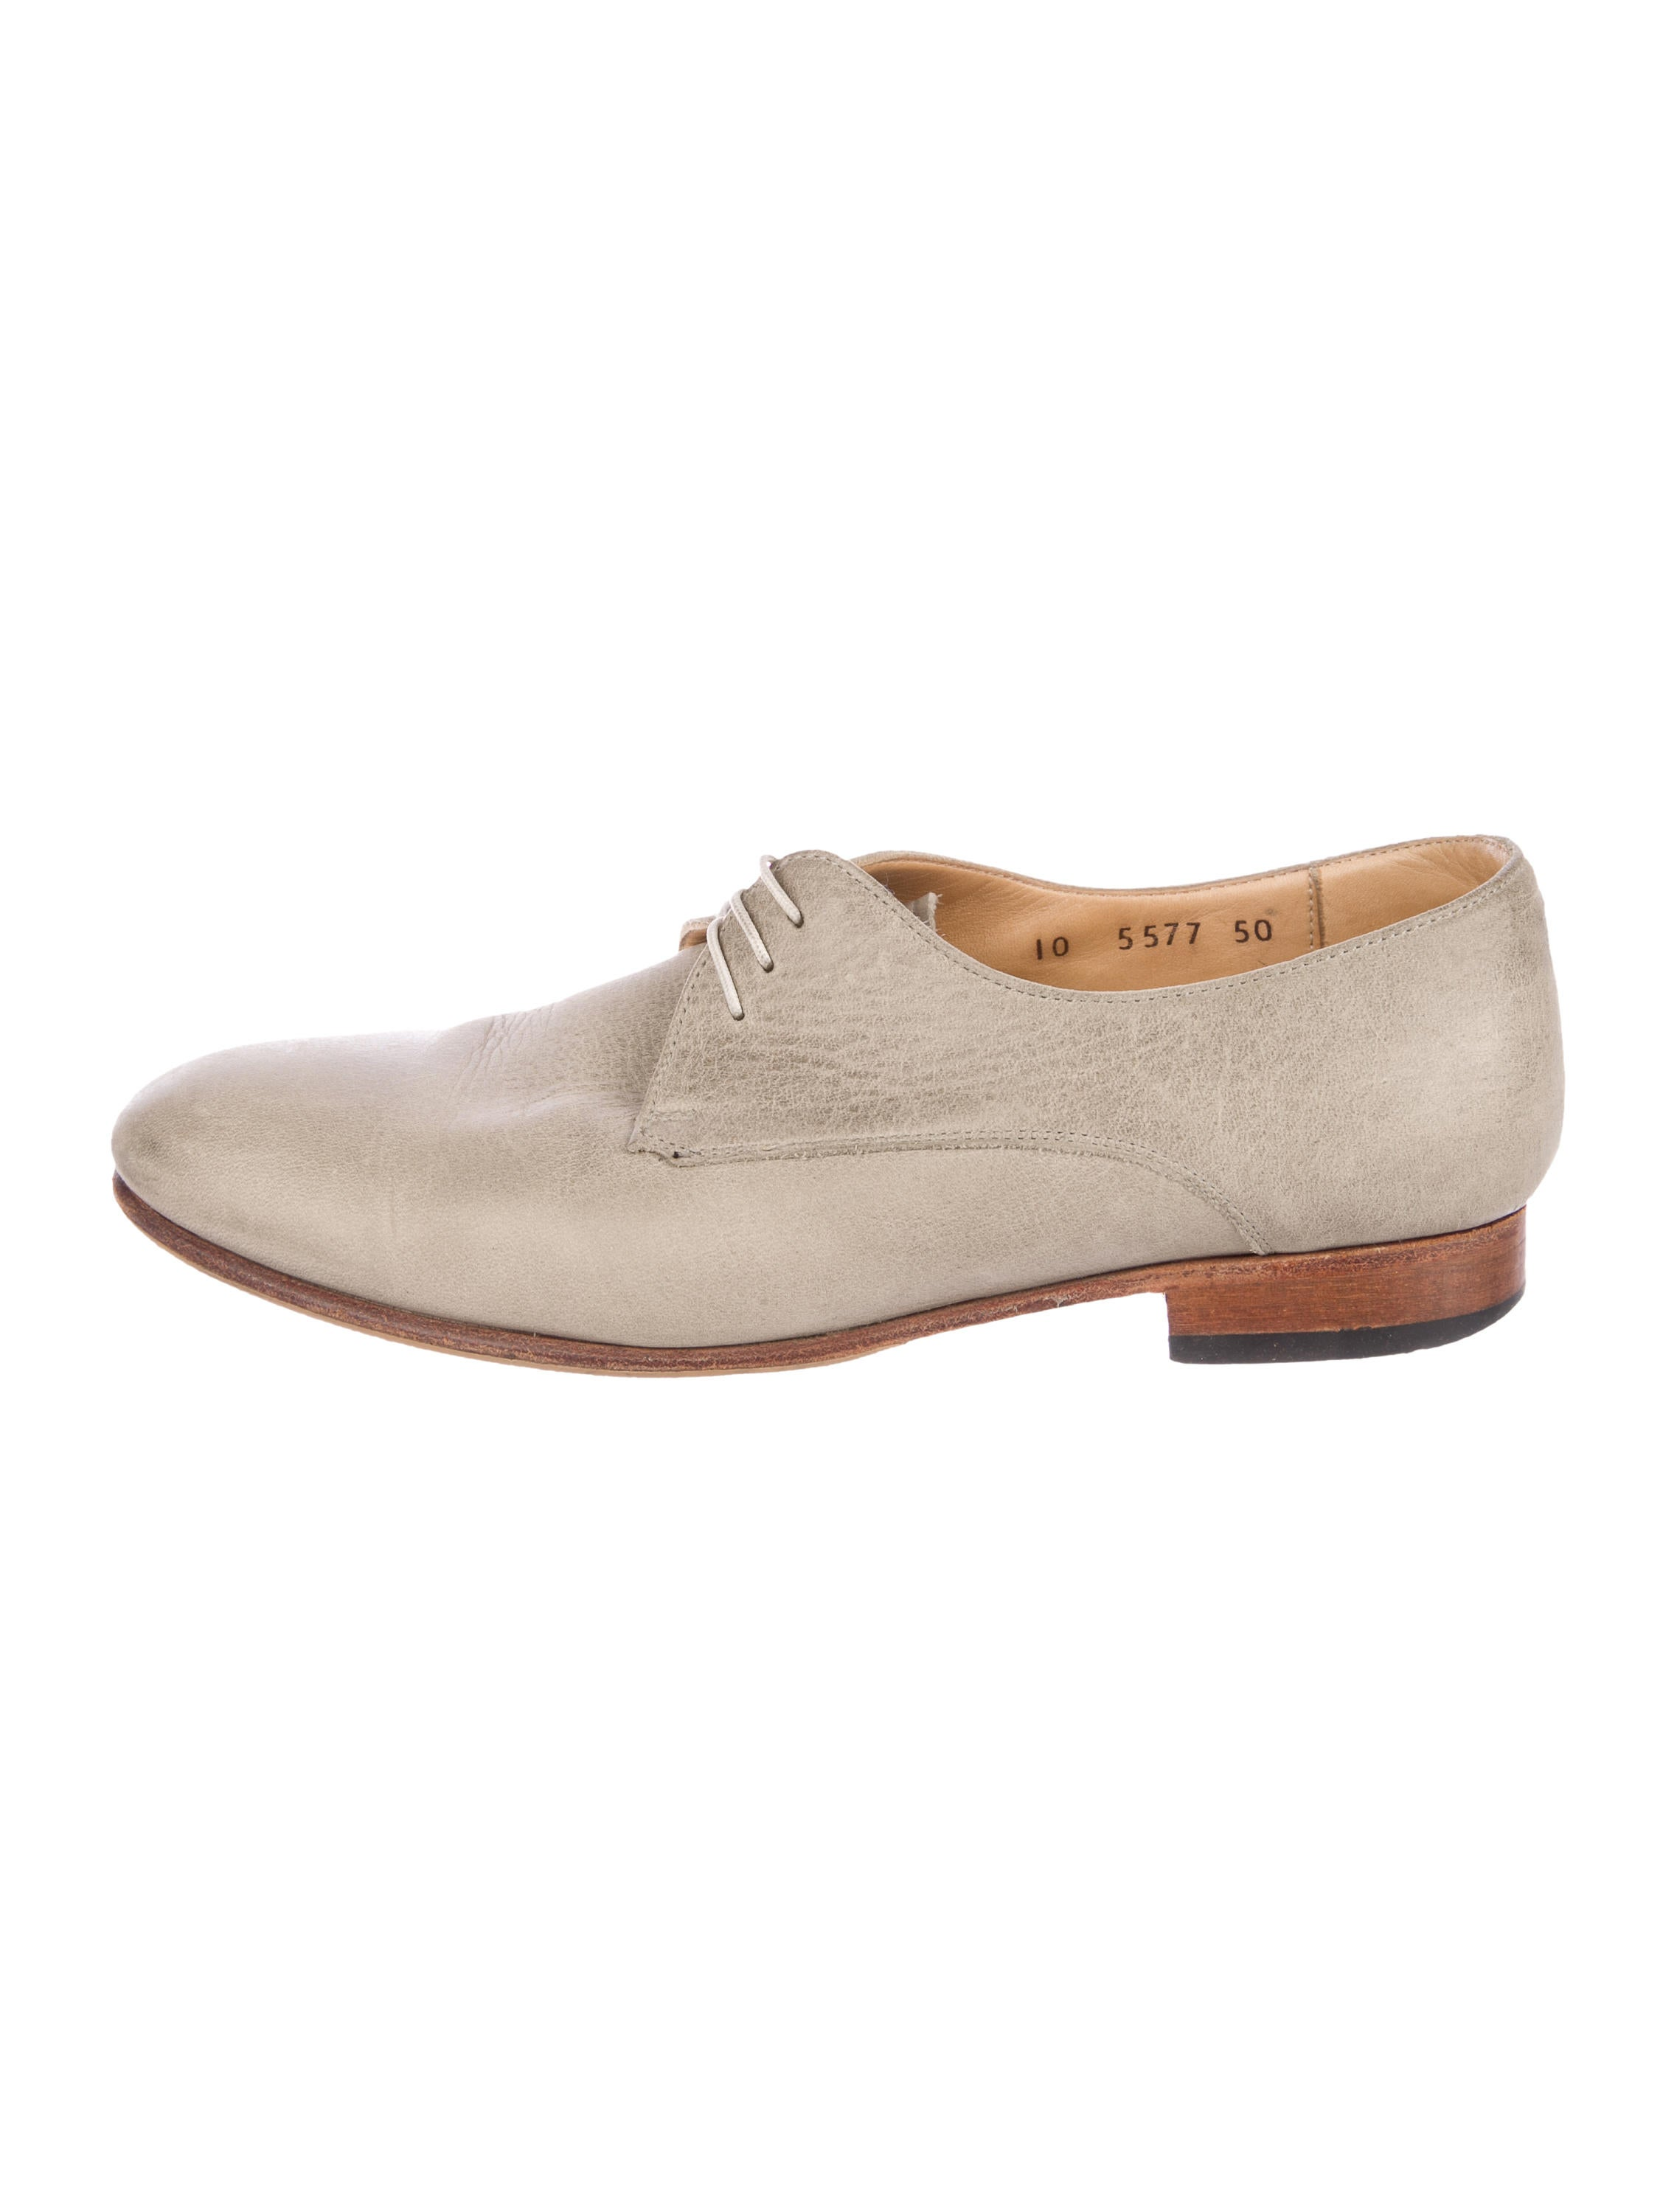 Dieppa Restrepo Leather Lace-Up Oxfords order online discount explore great deals cheap price sale clearance store cheap eastbay 4ErwwWC